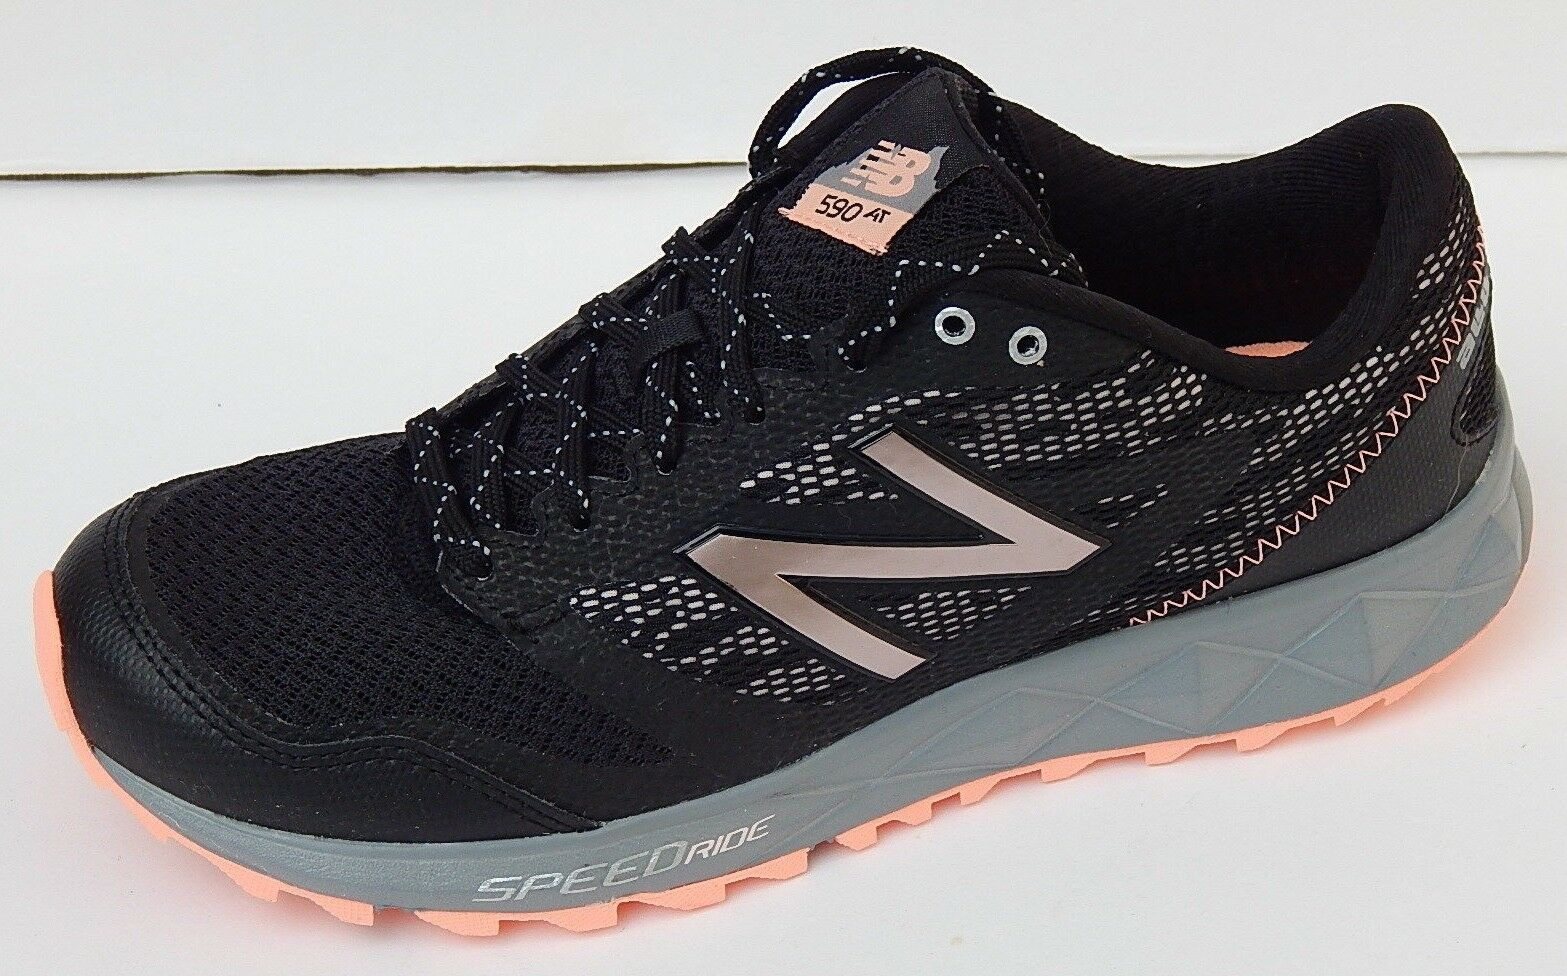 NEW BALANCE 590 SPEEDRIDE ALL TERRAIN damen Turnschuhe sz 8.5 8.5 8.5 B M NEW AUTHENTIC 851659